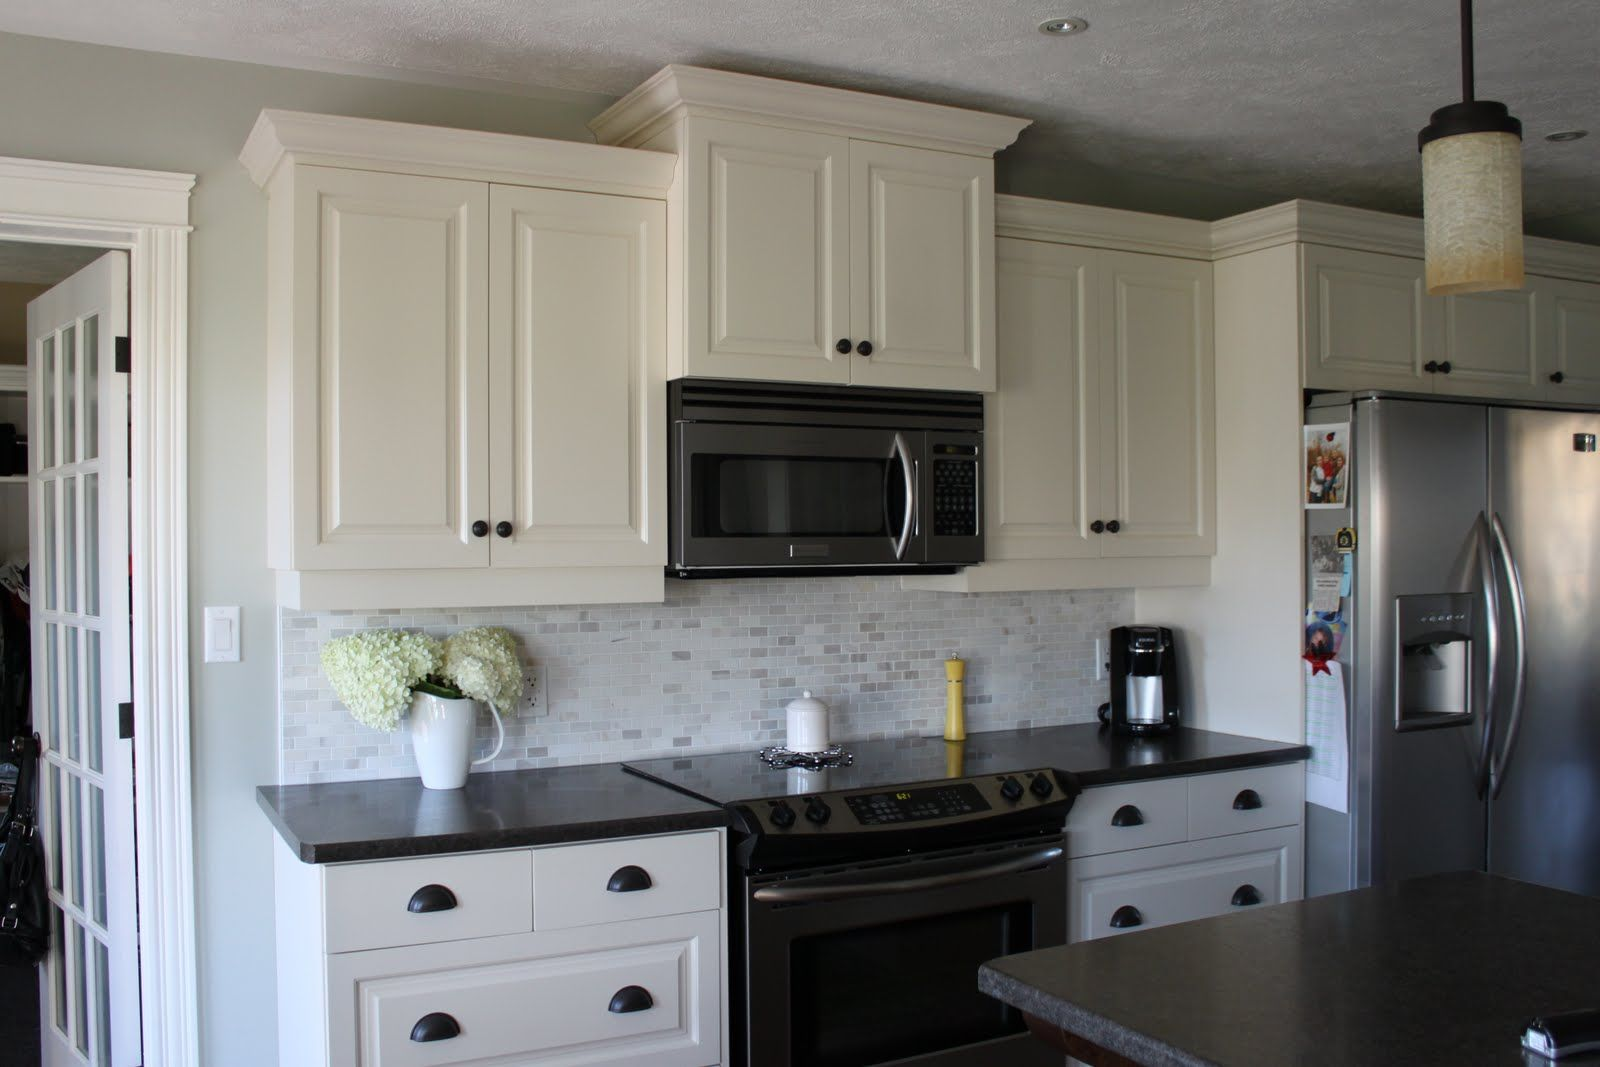 white cabinets with gray backsplash kitchen ideas in 2018 pinterest grey backsplash white on kitchen cabinets grey and white id=31678